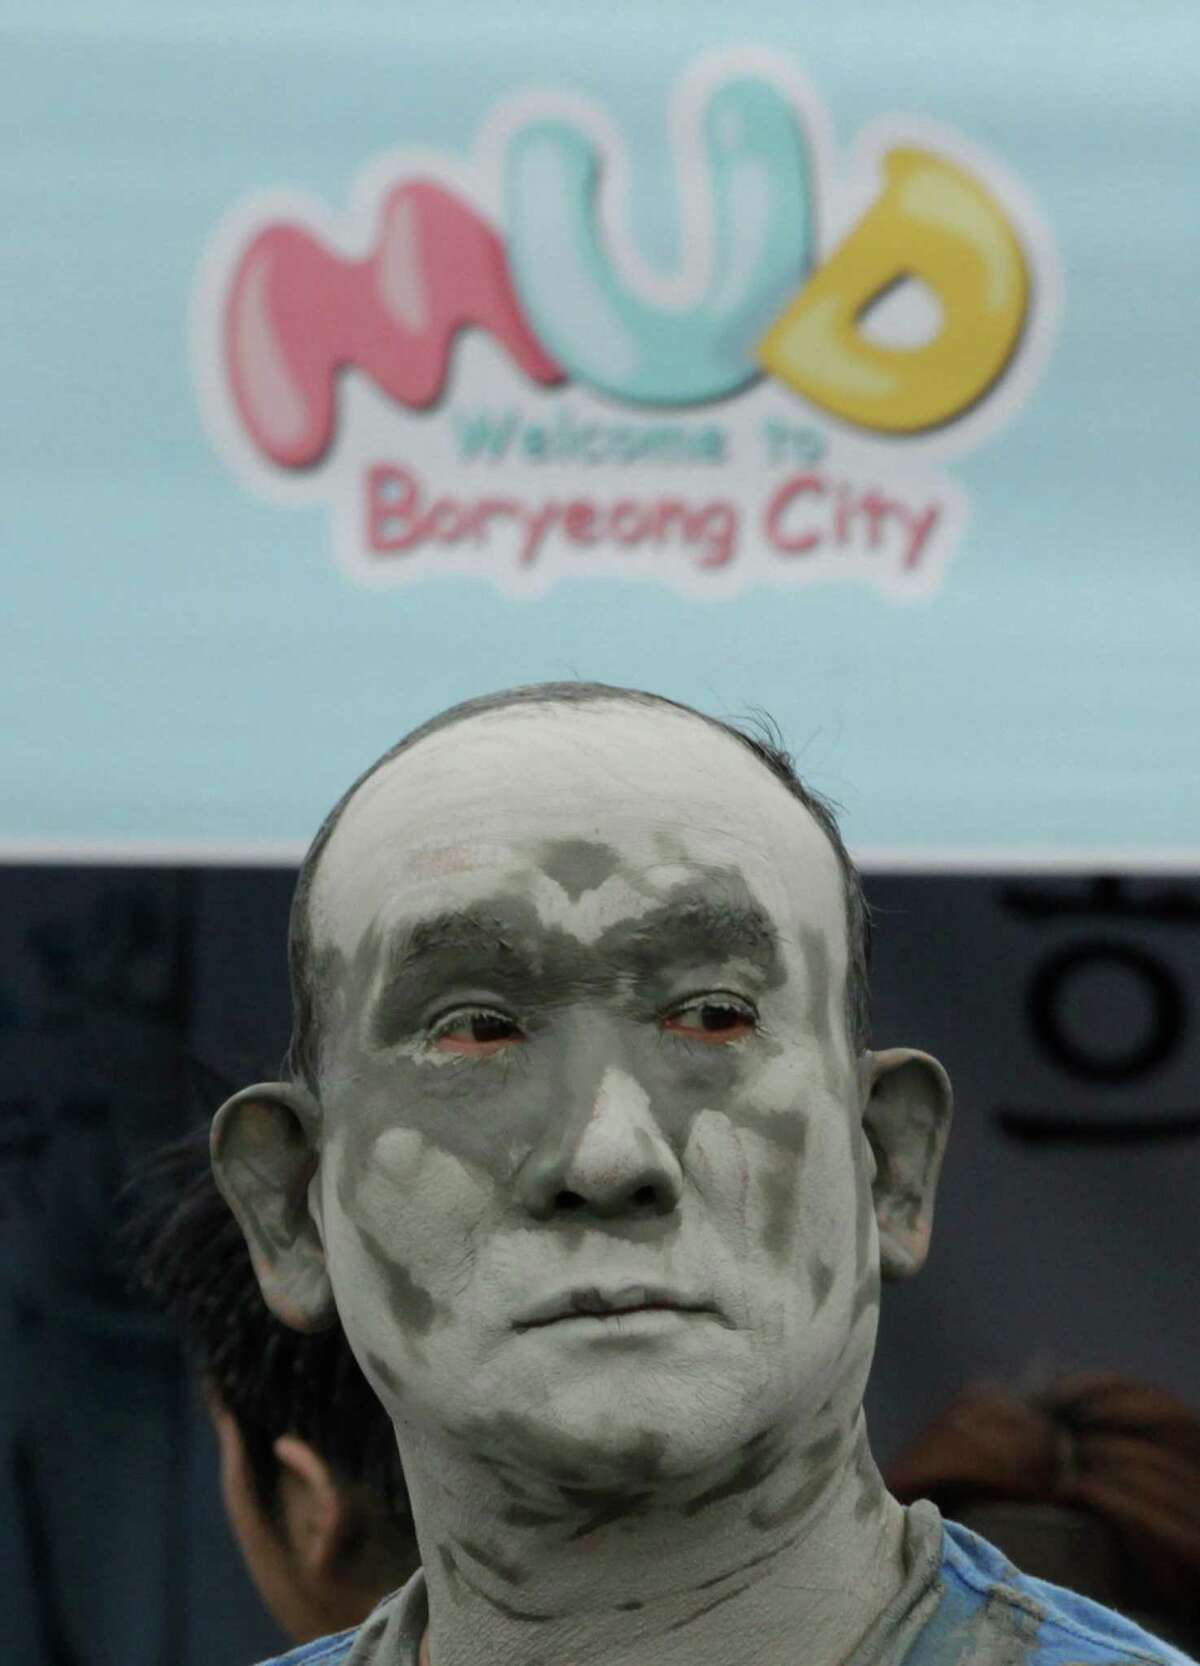 A man with his face covered with mud takes part in the 15th annual mud festival on Daecheon Beach in Boryeong, South Korea, Sunrday, July 15, 2012. The festival features mud wrestling, mud sliding and mud king contest.